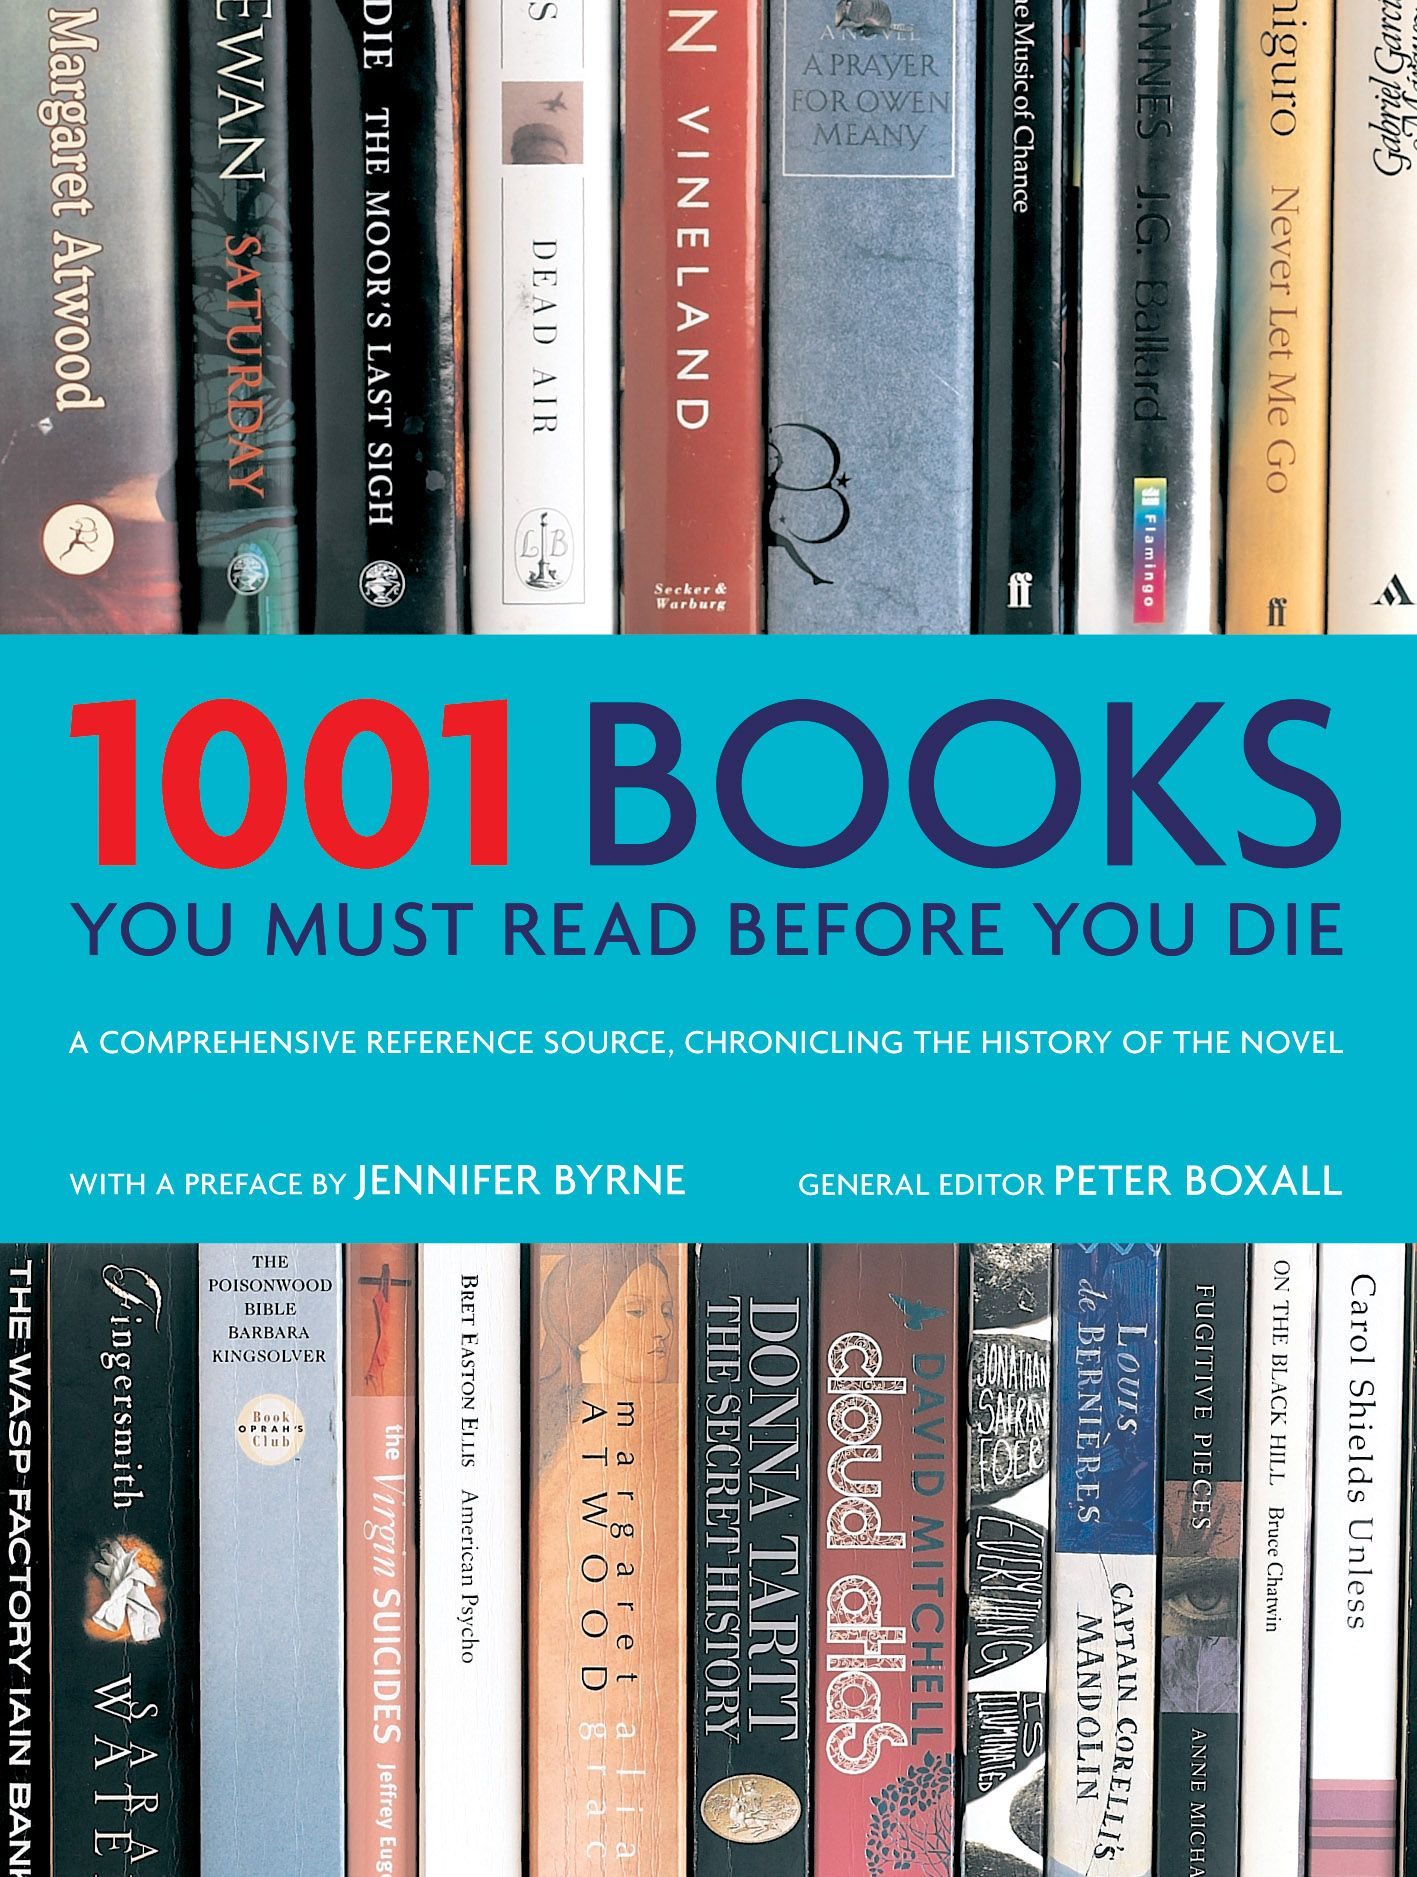 Image result for 1001 Books You Must Read Before You Die by Peter Boxall